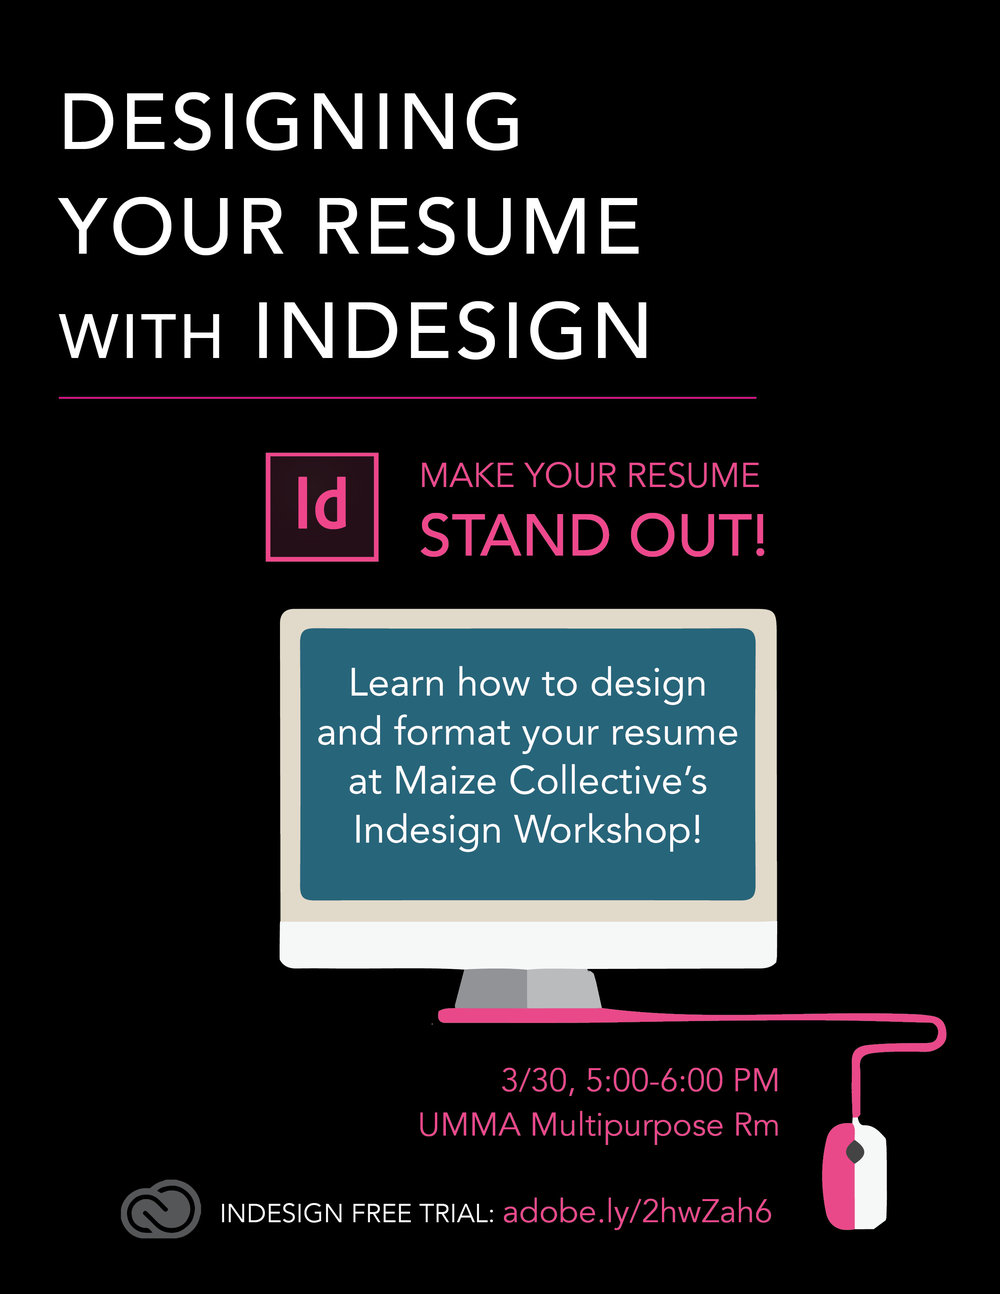 Adobe Workshop - Poster Design for InDesign Workshop